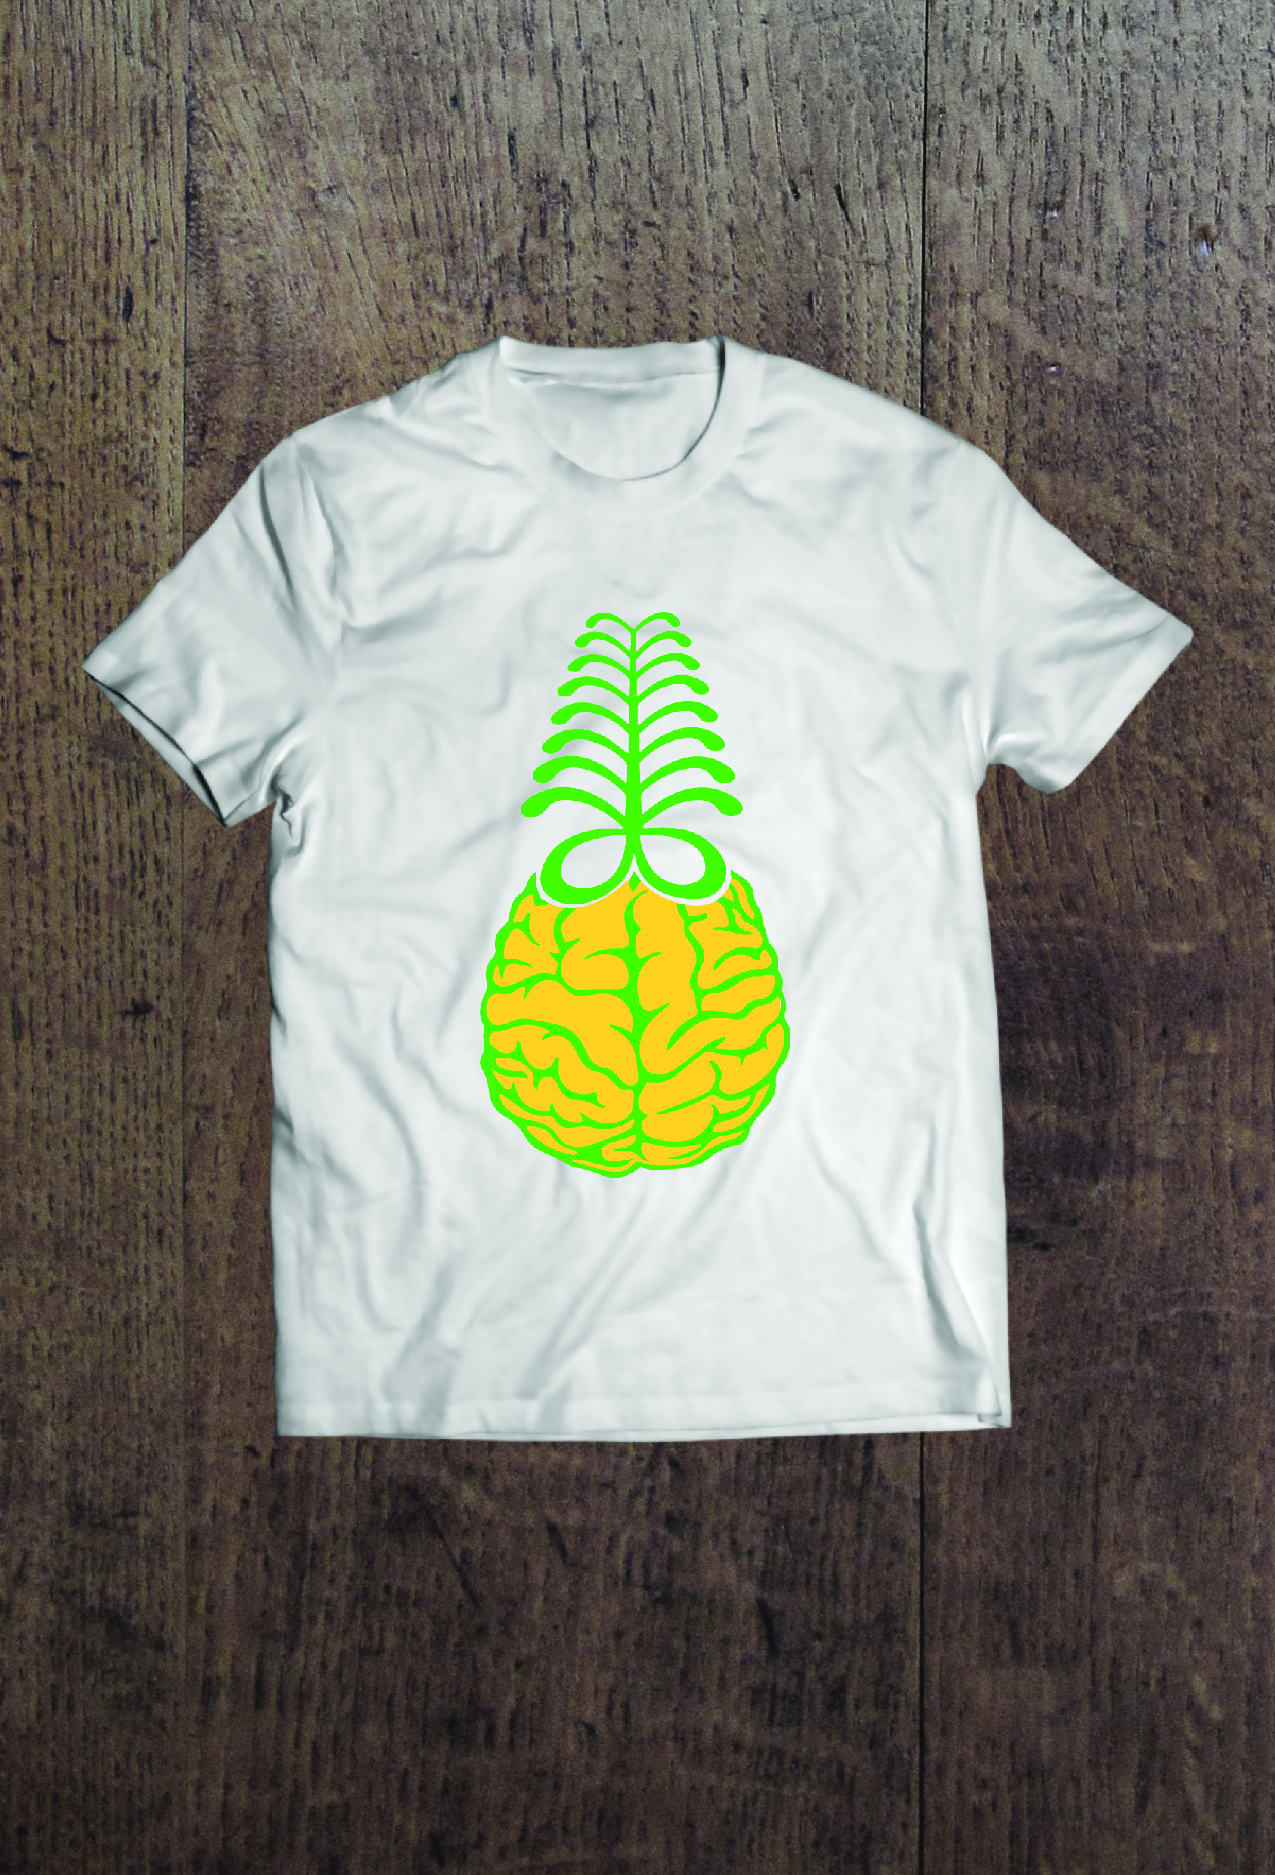 Coming soon... - Our mental well being is imperative! Atop the brain is the Adinkra symbol